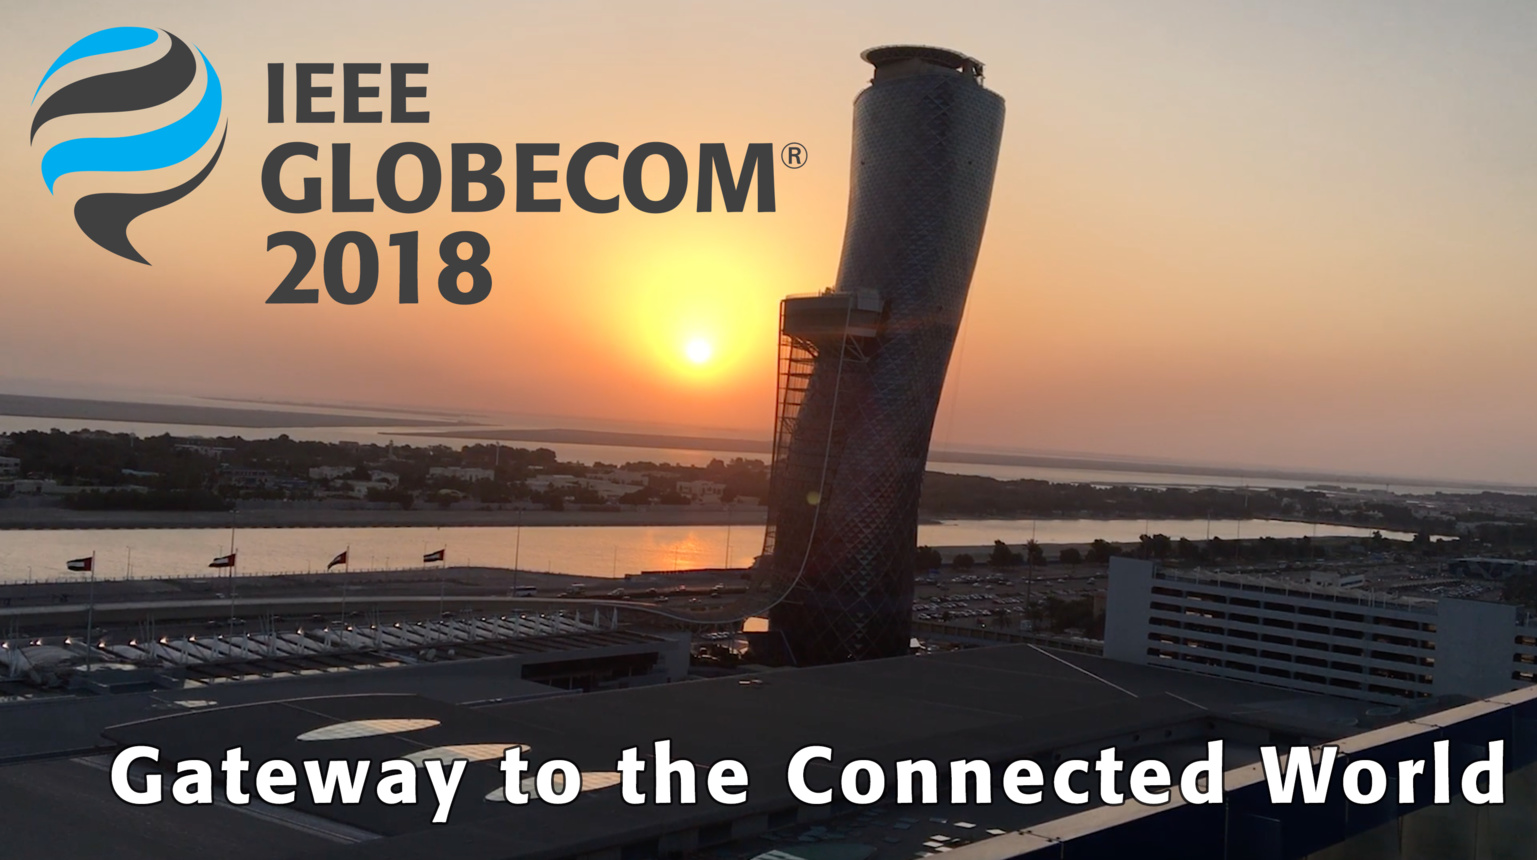 GLOBECOM - Gateway to the Connected World